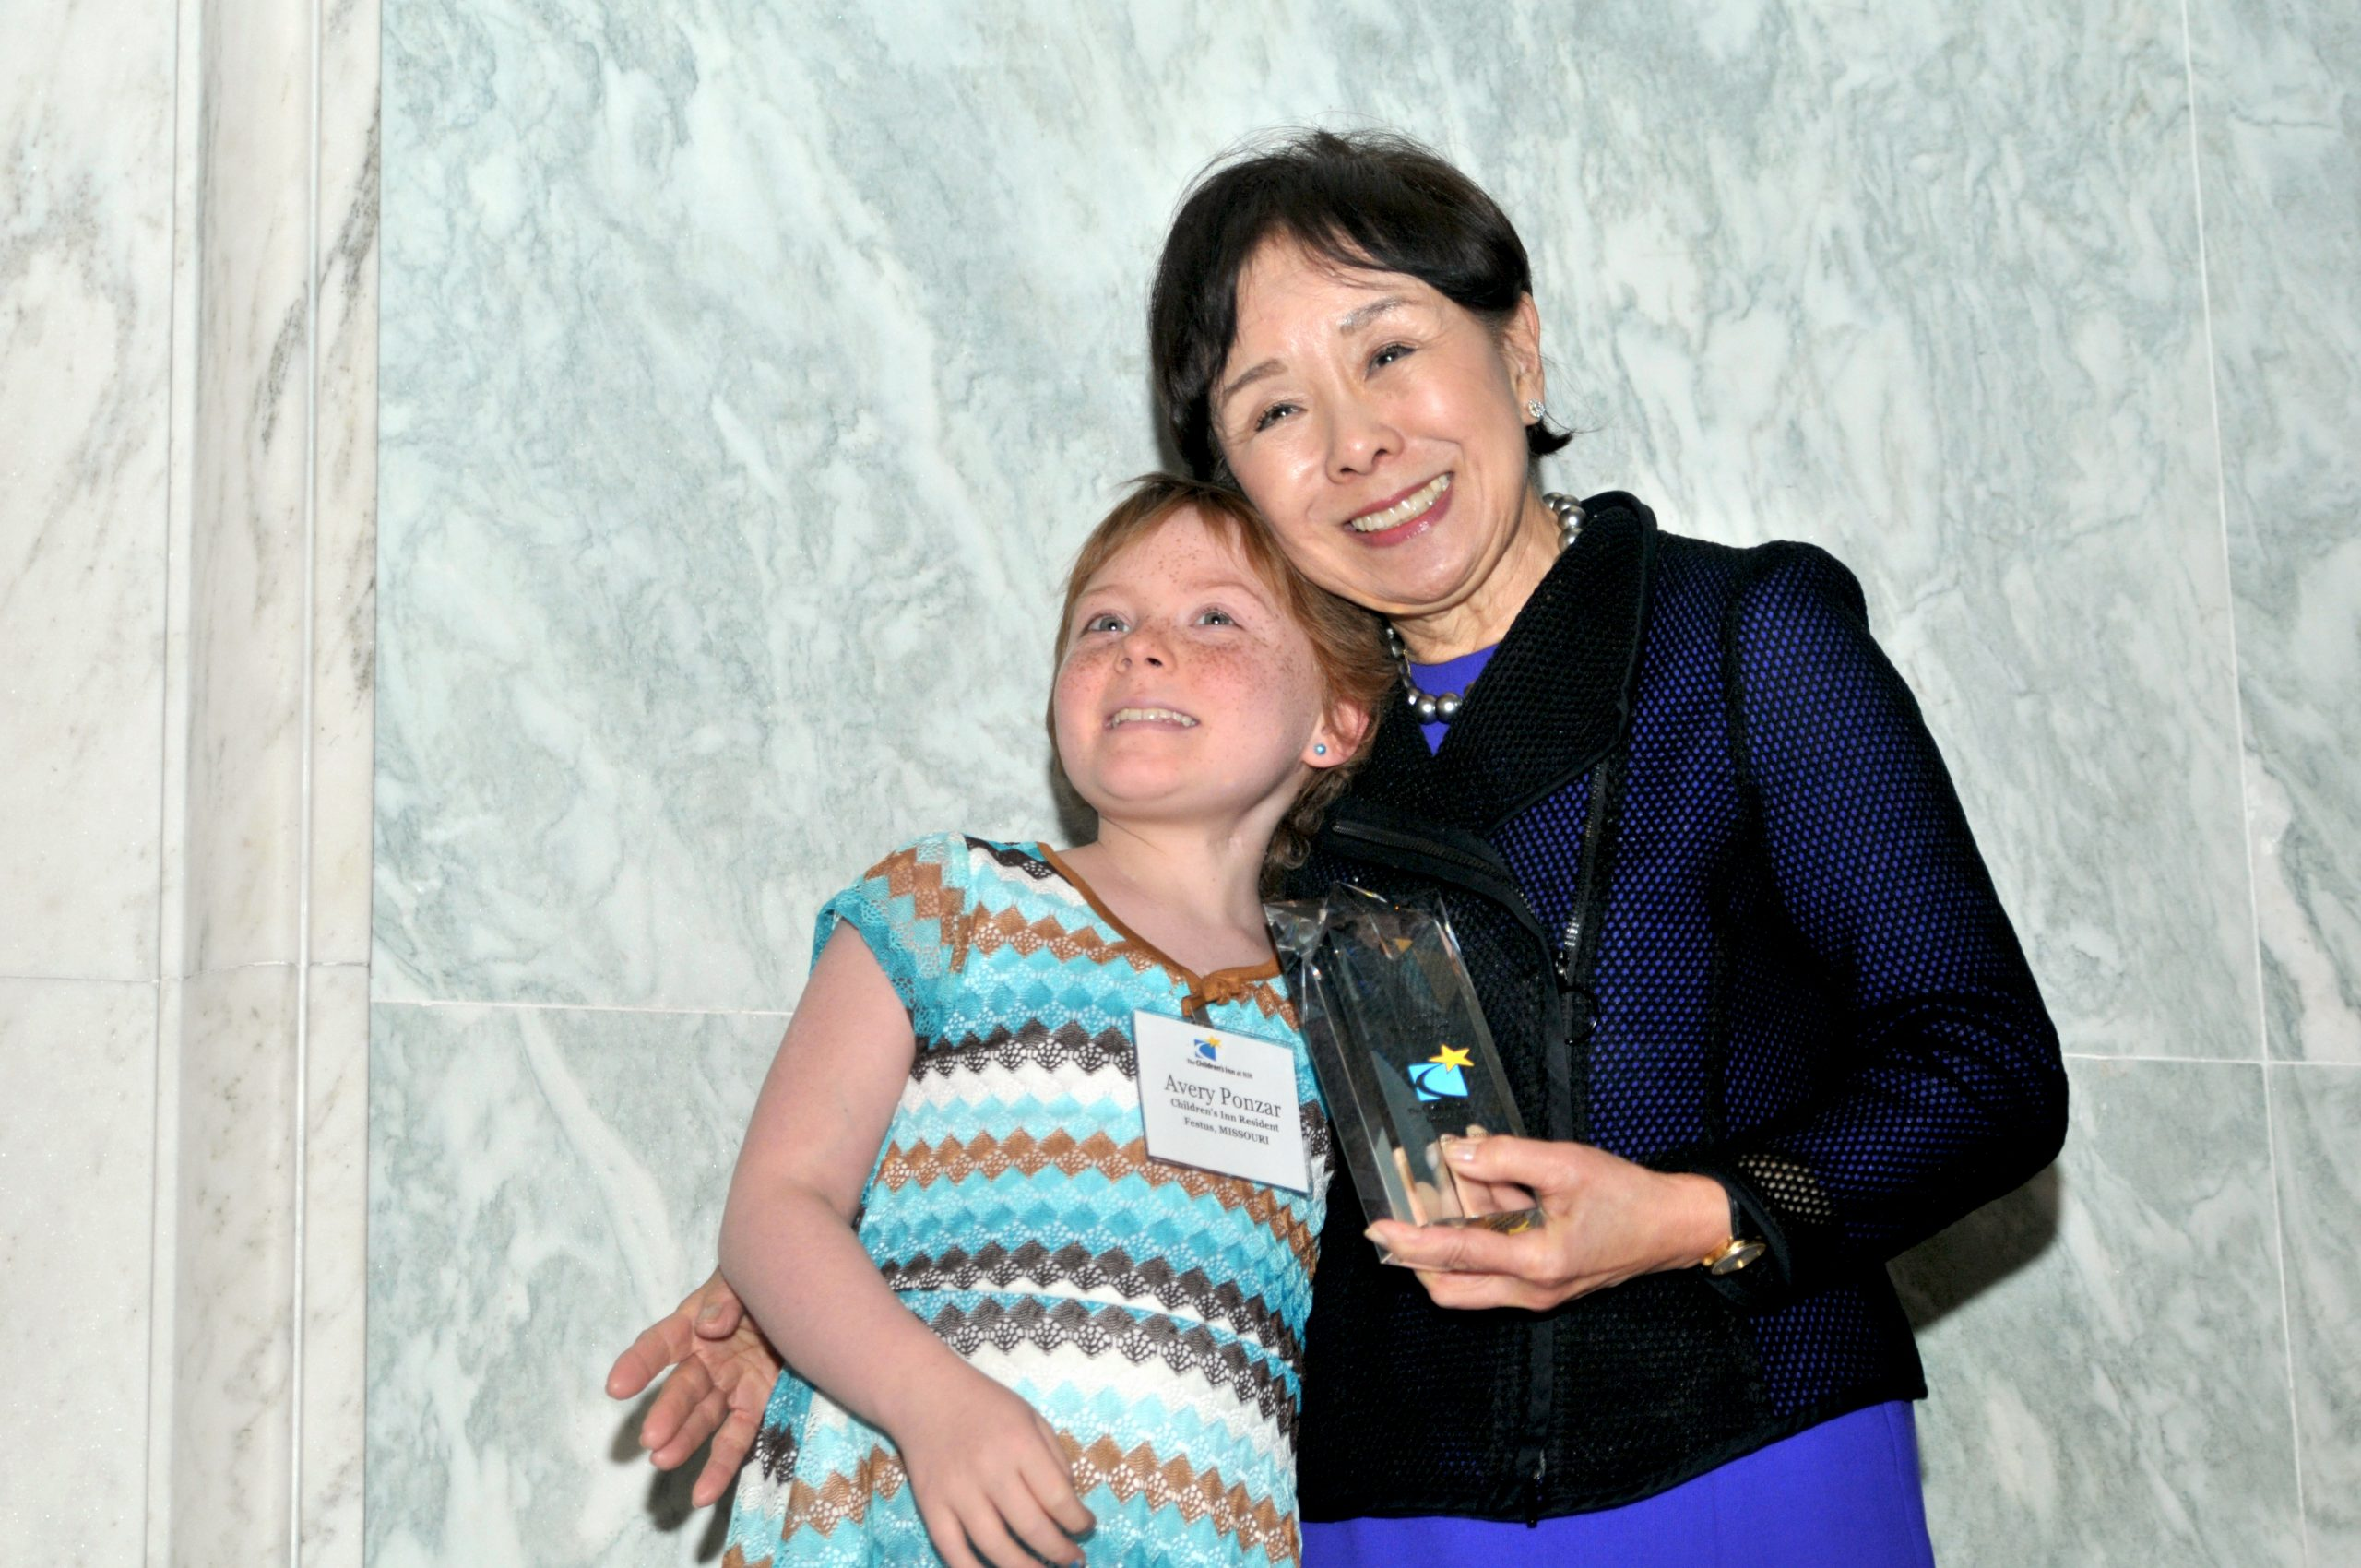 Doris Matsui and Avery Ponzar at the 2018 Congressional Event